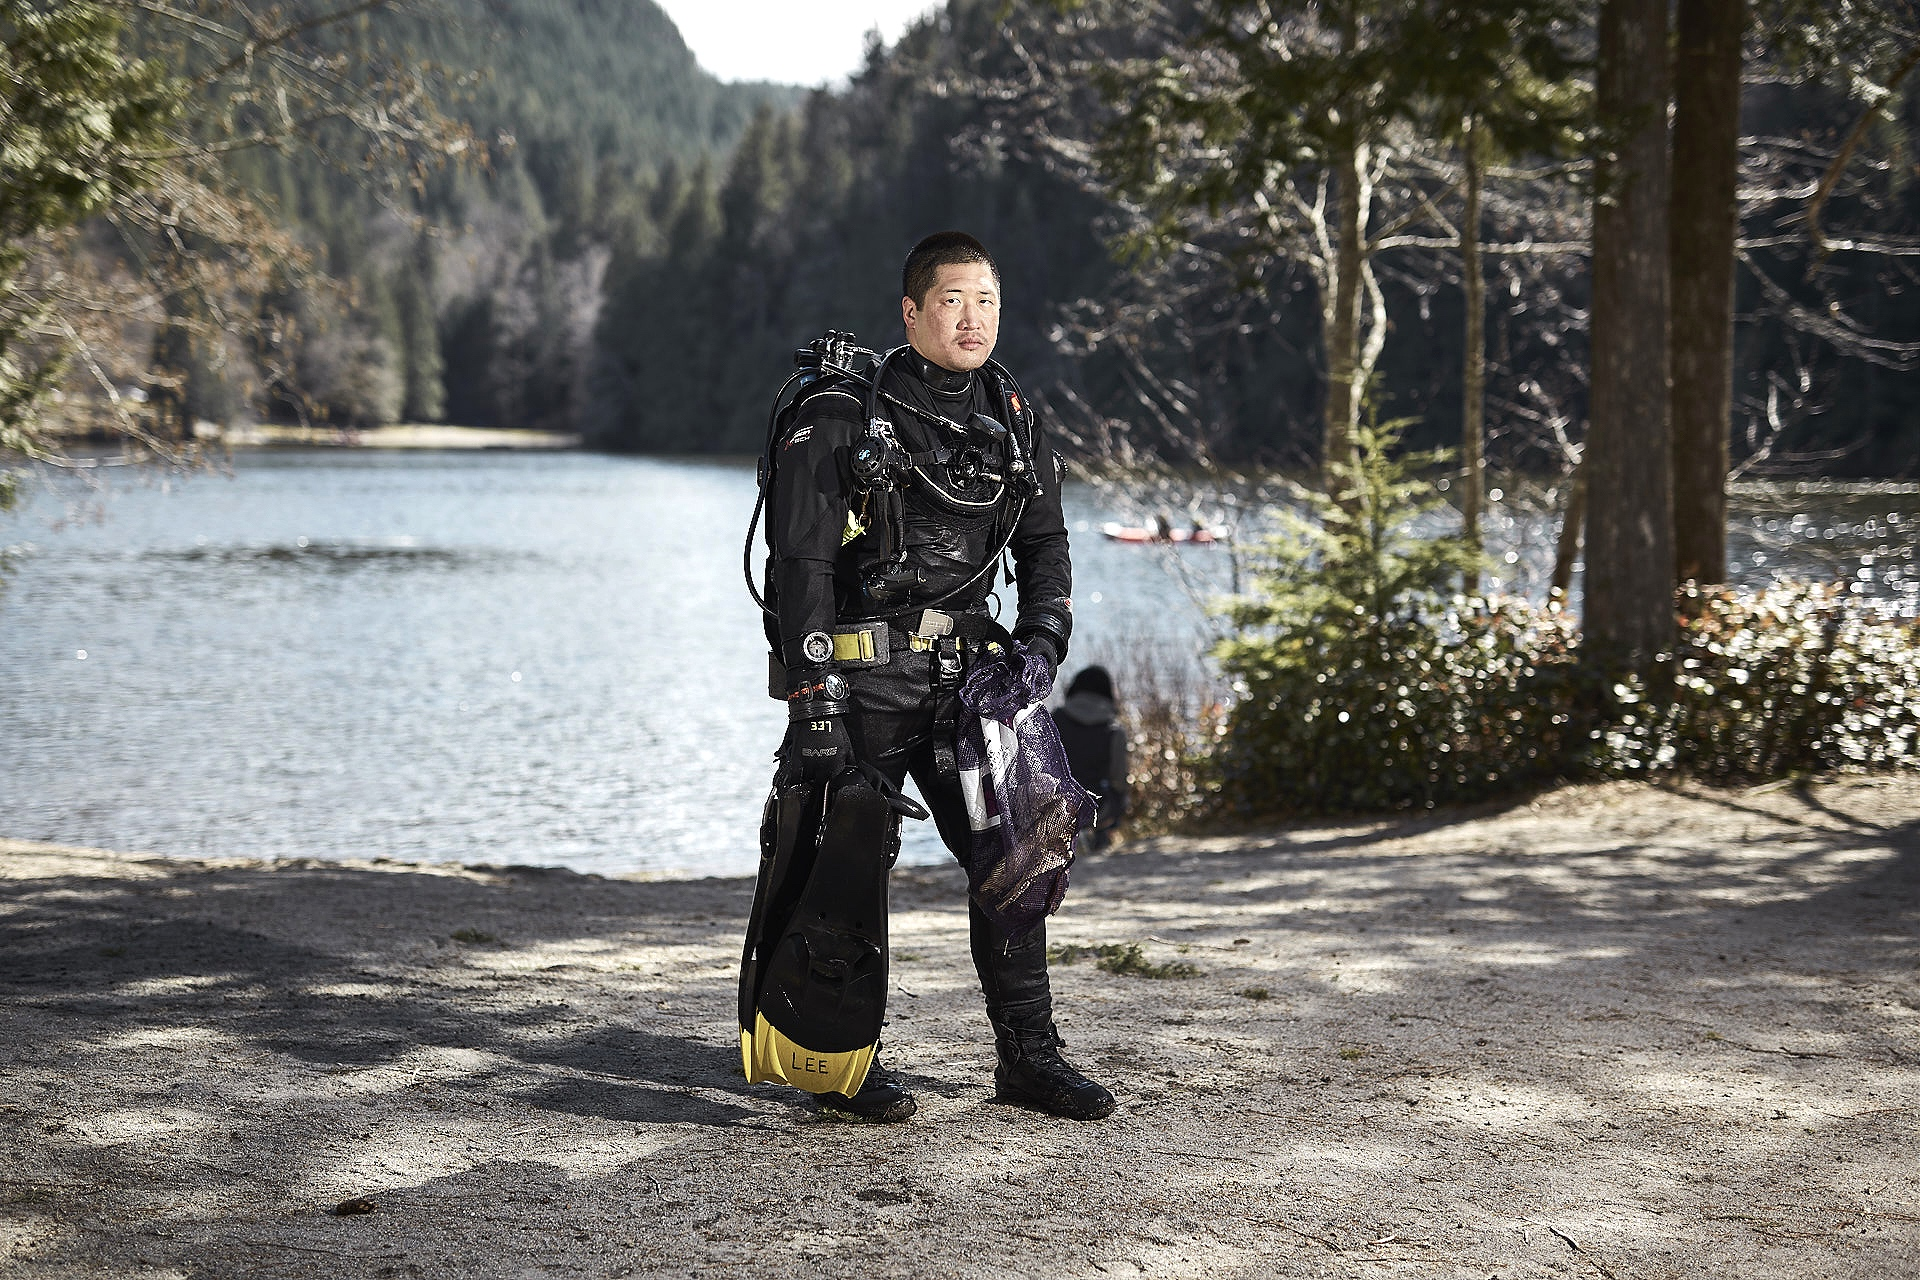 Alice Lake Clean Up - Essay portraying scuba divers cleaning up debris from the Alice Lake